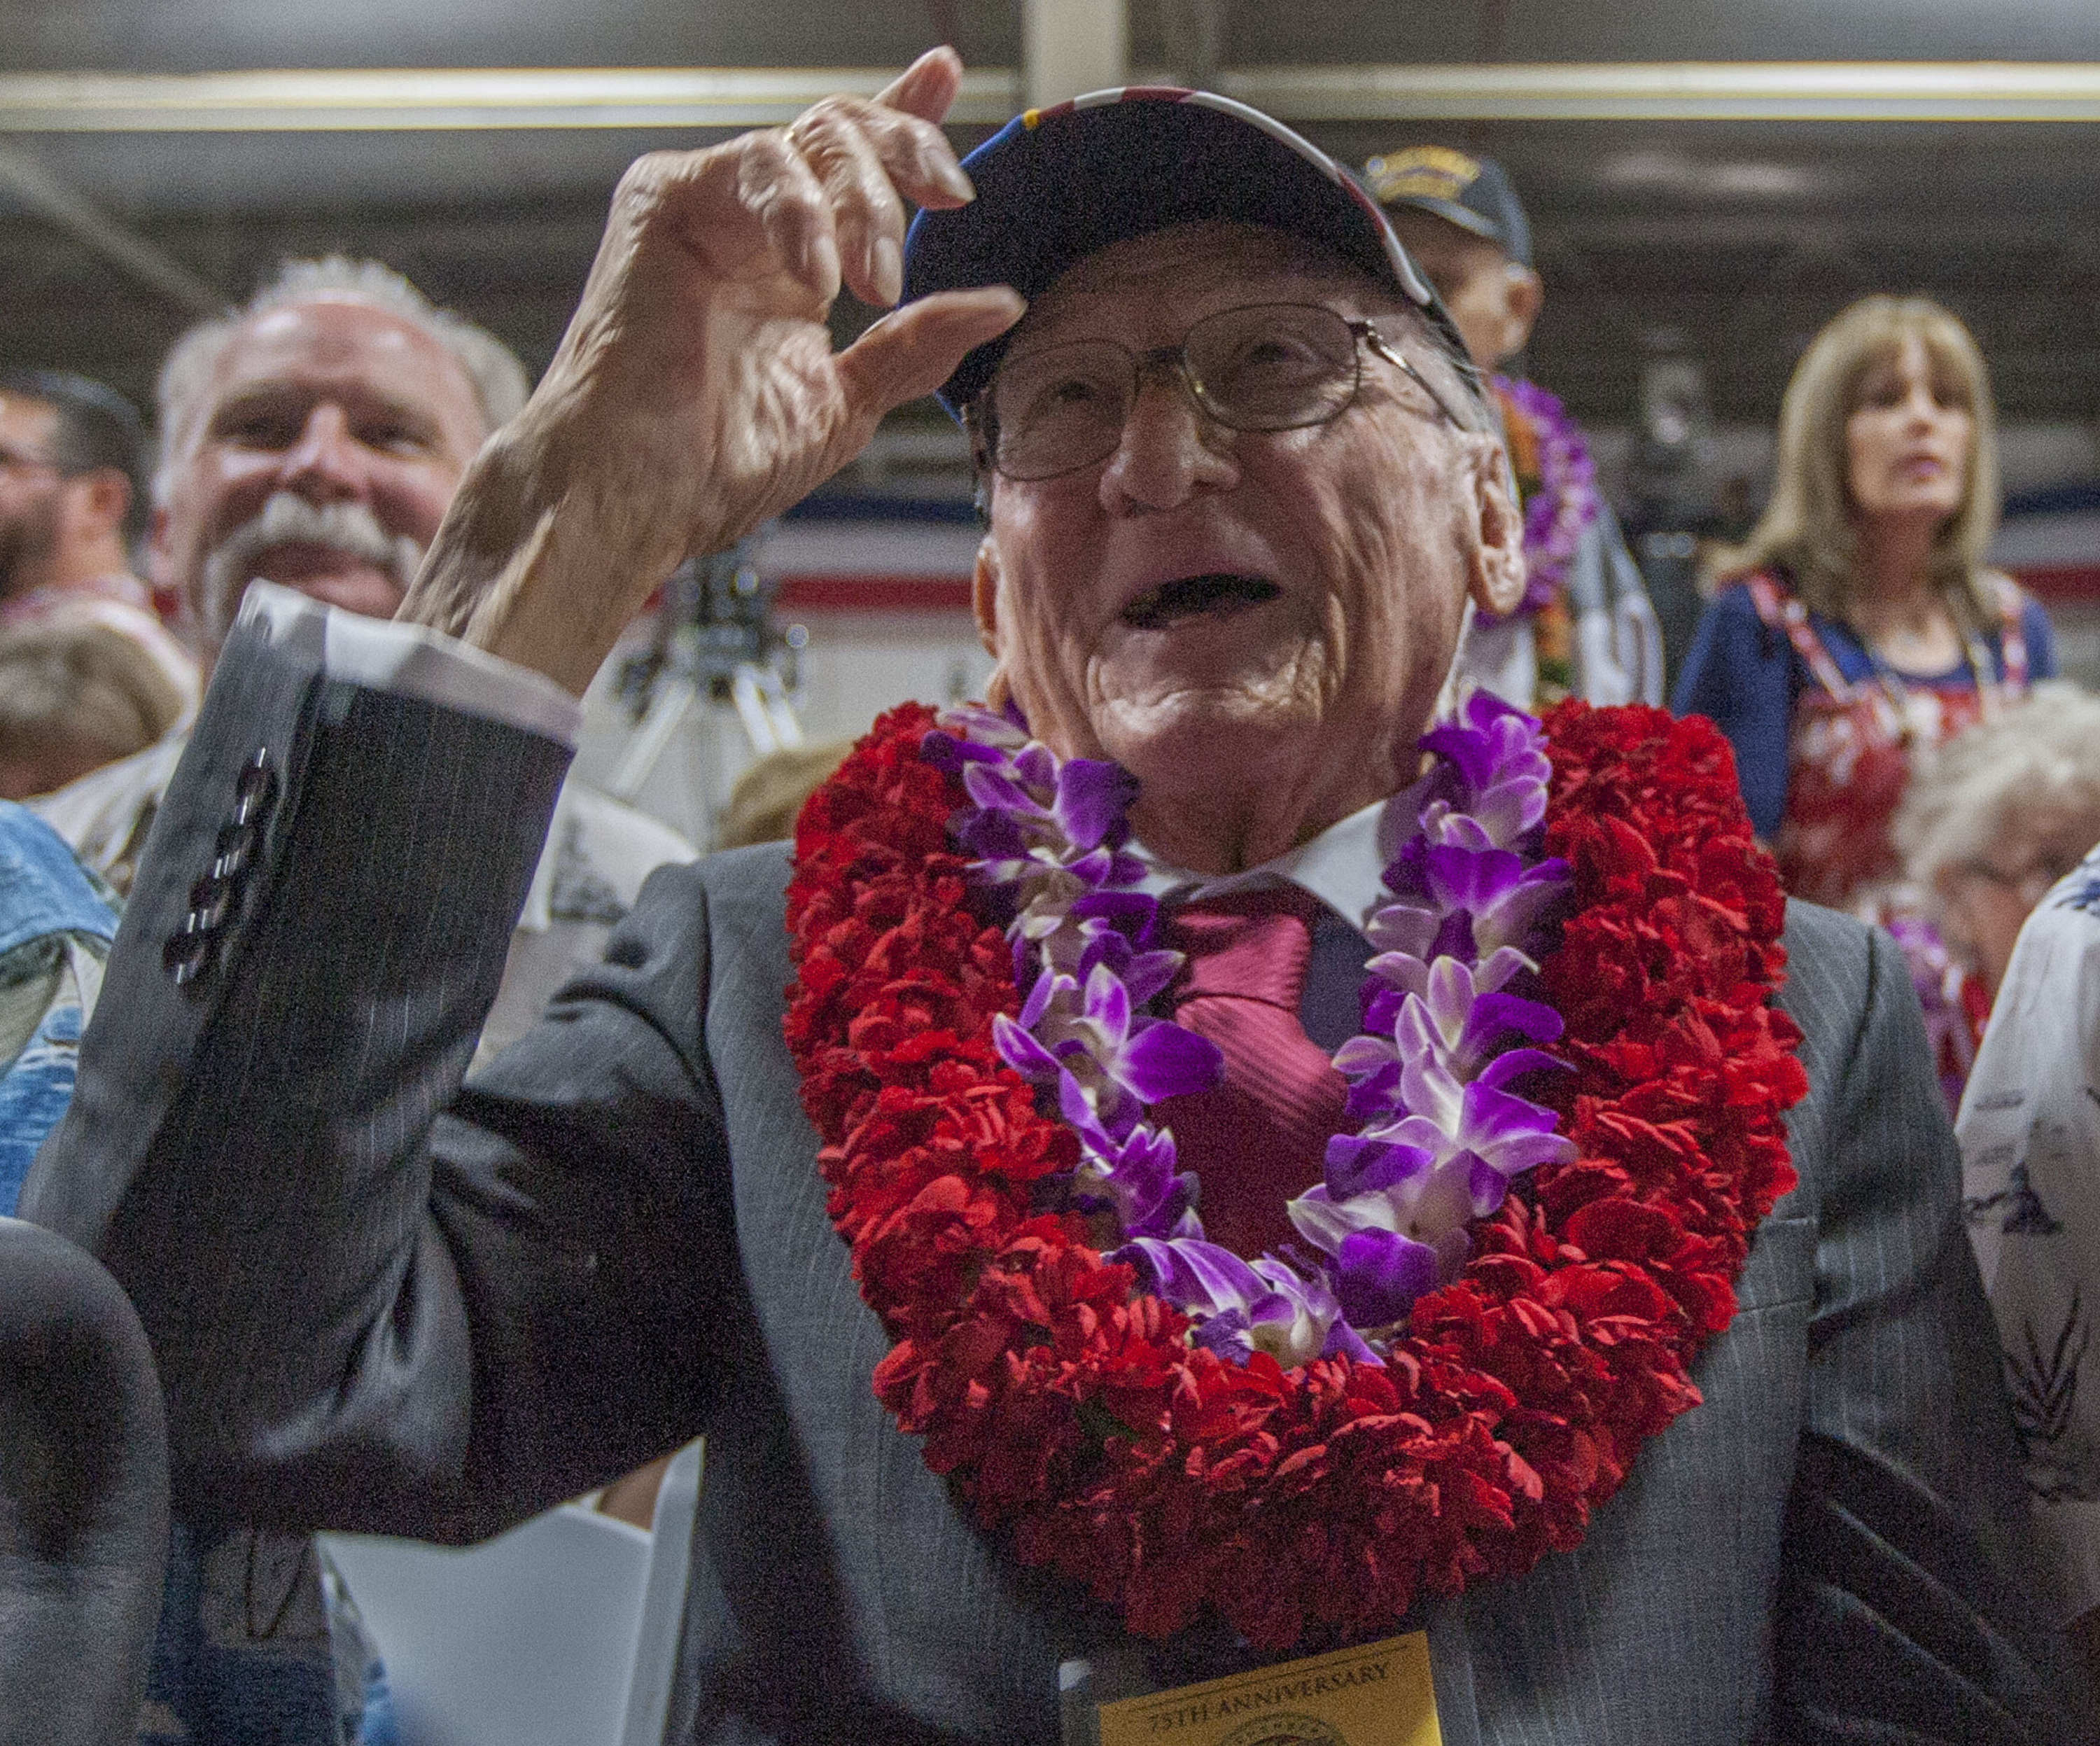 In this Dec. 7, 2016, file photo, Donald Stratton, center, a USS Arizona survivor, acknowledges a friend at Kilo Pier next to the World War II Valor in the Pacific National Monument at Joint Base Pearl Harbor-Hickam in Honolulu. Stratton passed away in his sleep at his Colorado Springs home Saturday, Feb. 16, 2020 with his family in attendance. Stratton was one of the survivors of the Dec. 7, 1941, Japanese aerial attack on the U.S. Navy base at Pearl Harbor in Hawaii that killed 1,100 Arizona crew members.